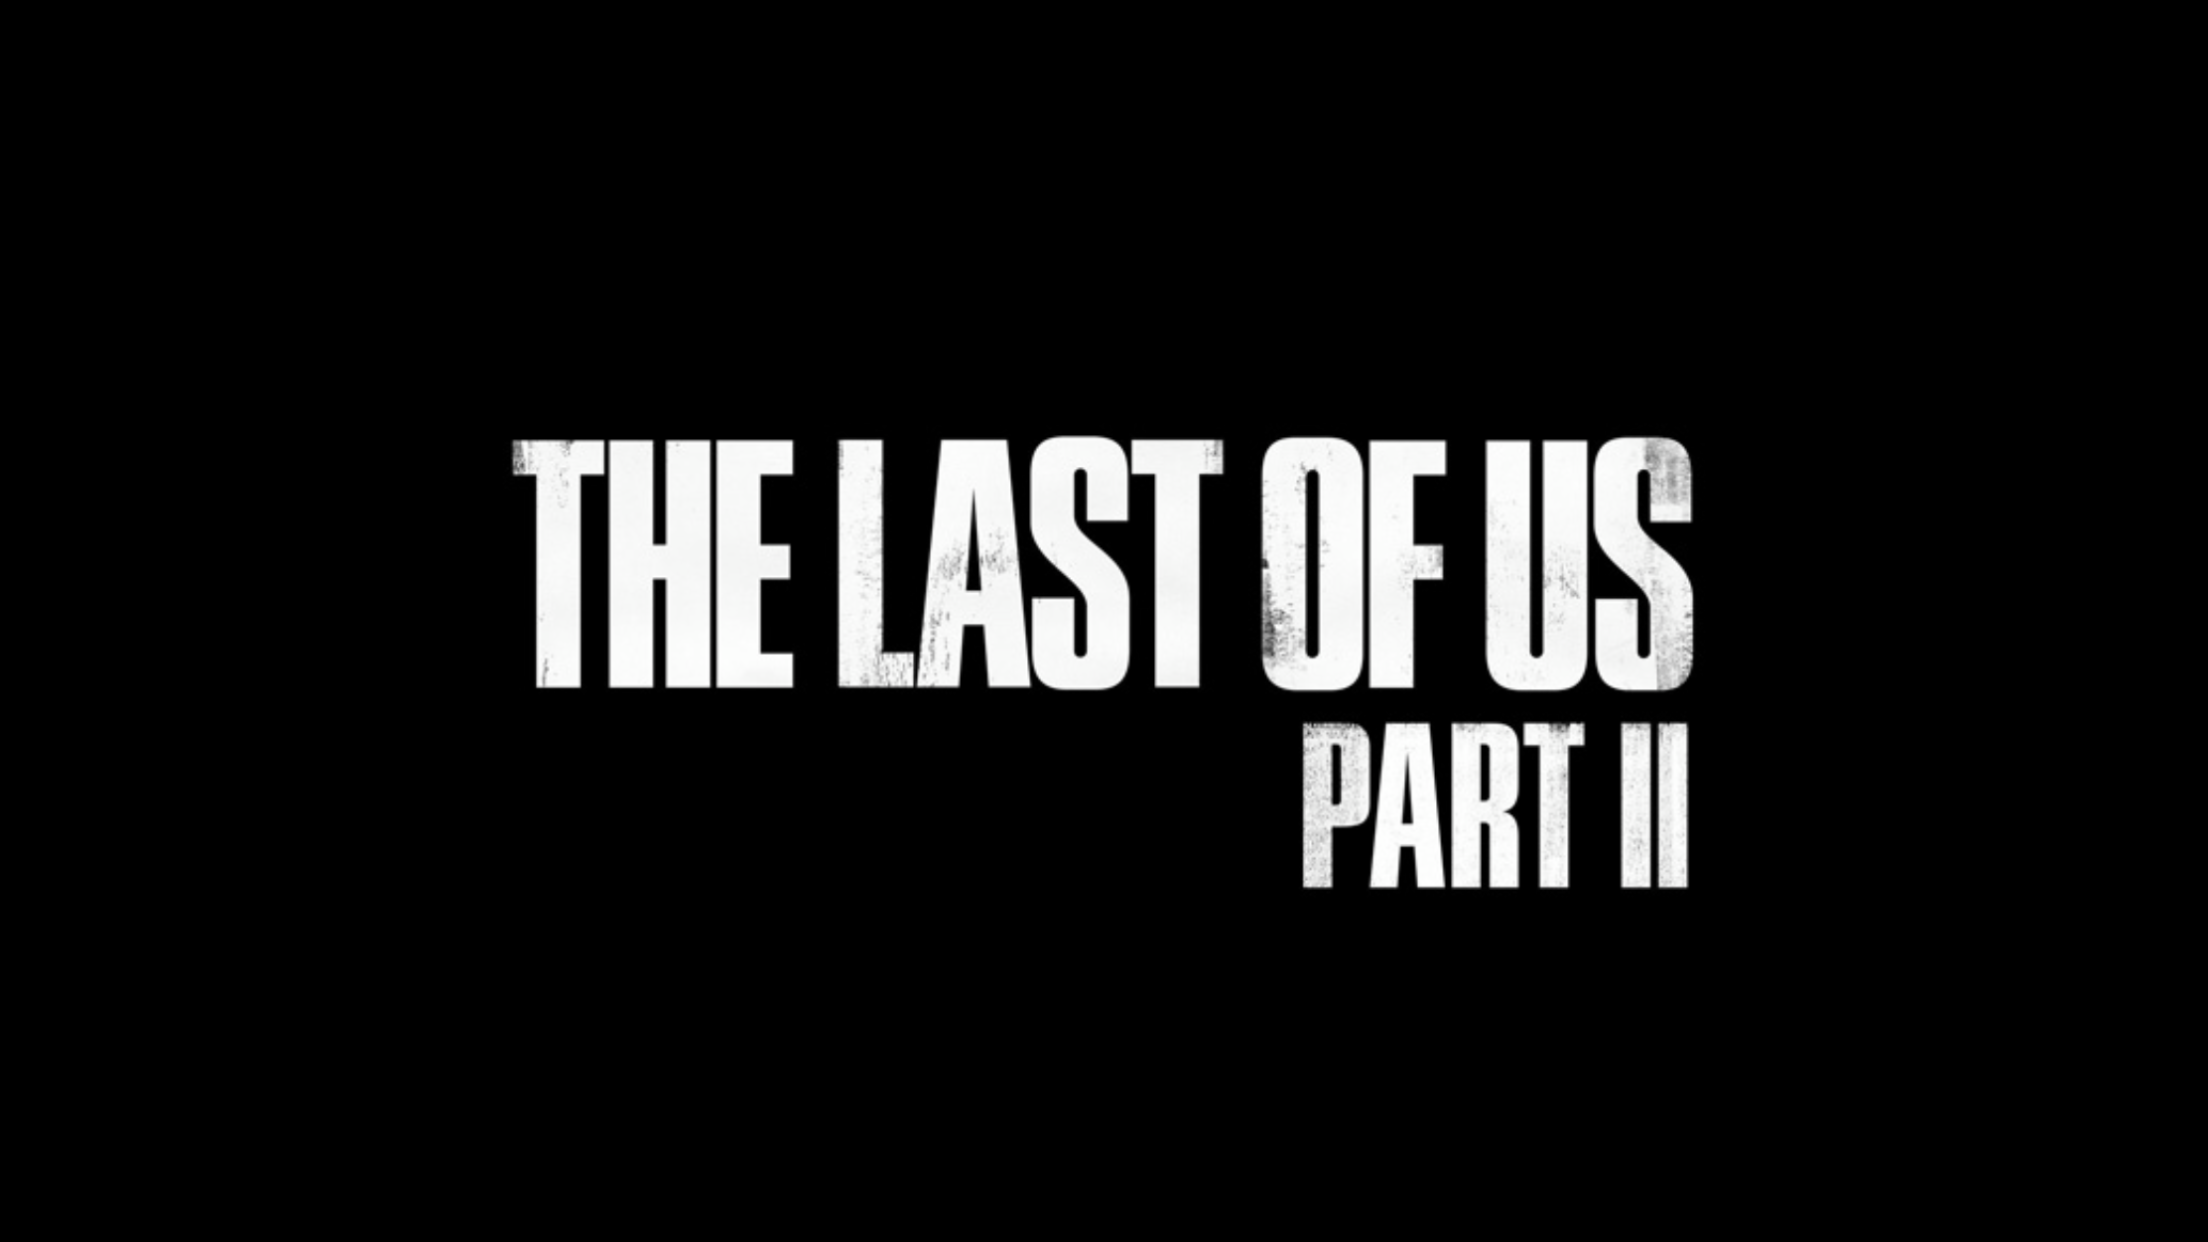 Pin By Theparademon14 On The Last Of Us In 2020 The Last Of Us Retail Logos The North Face Logo